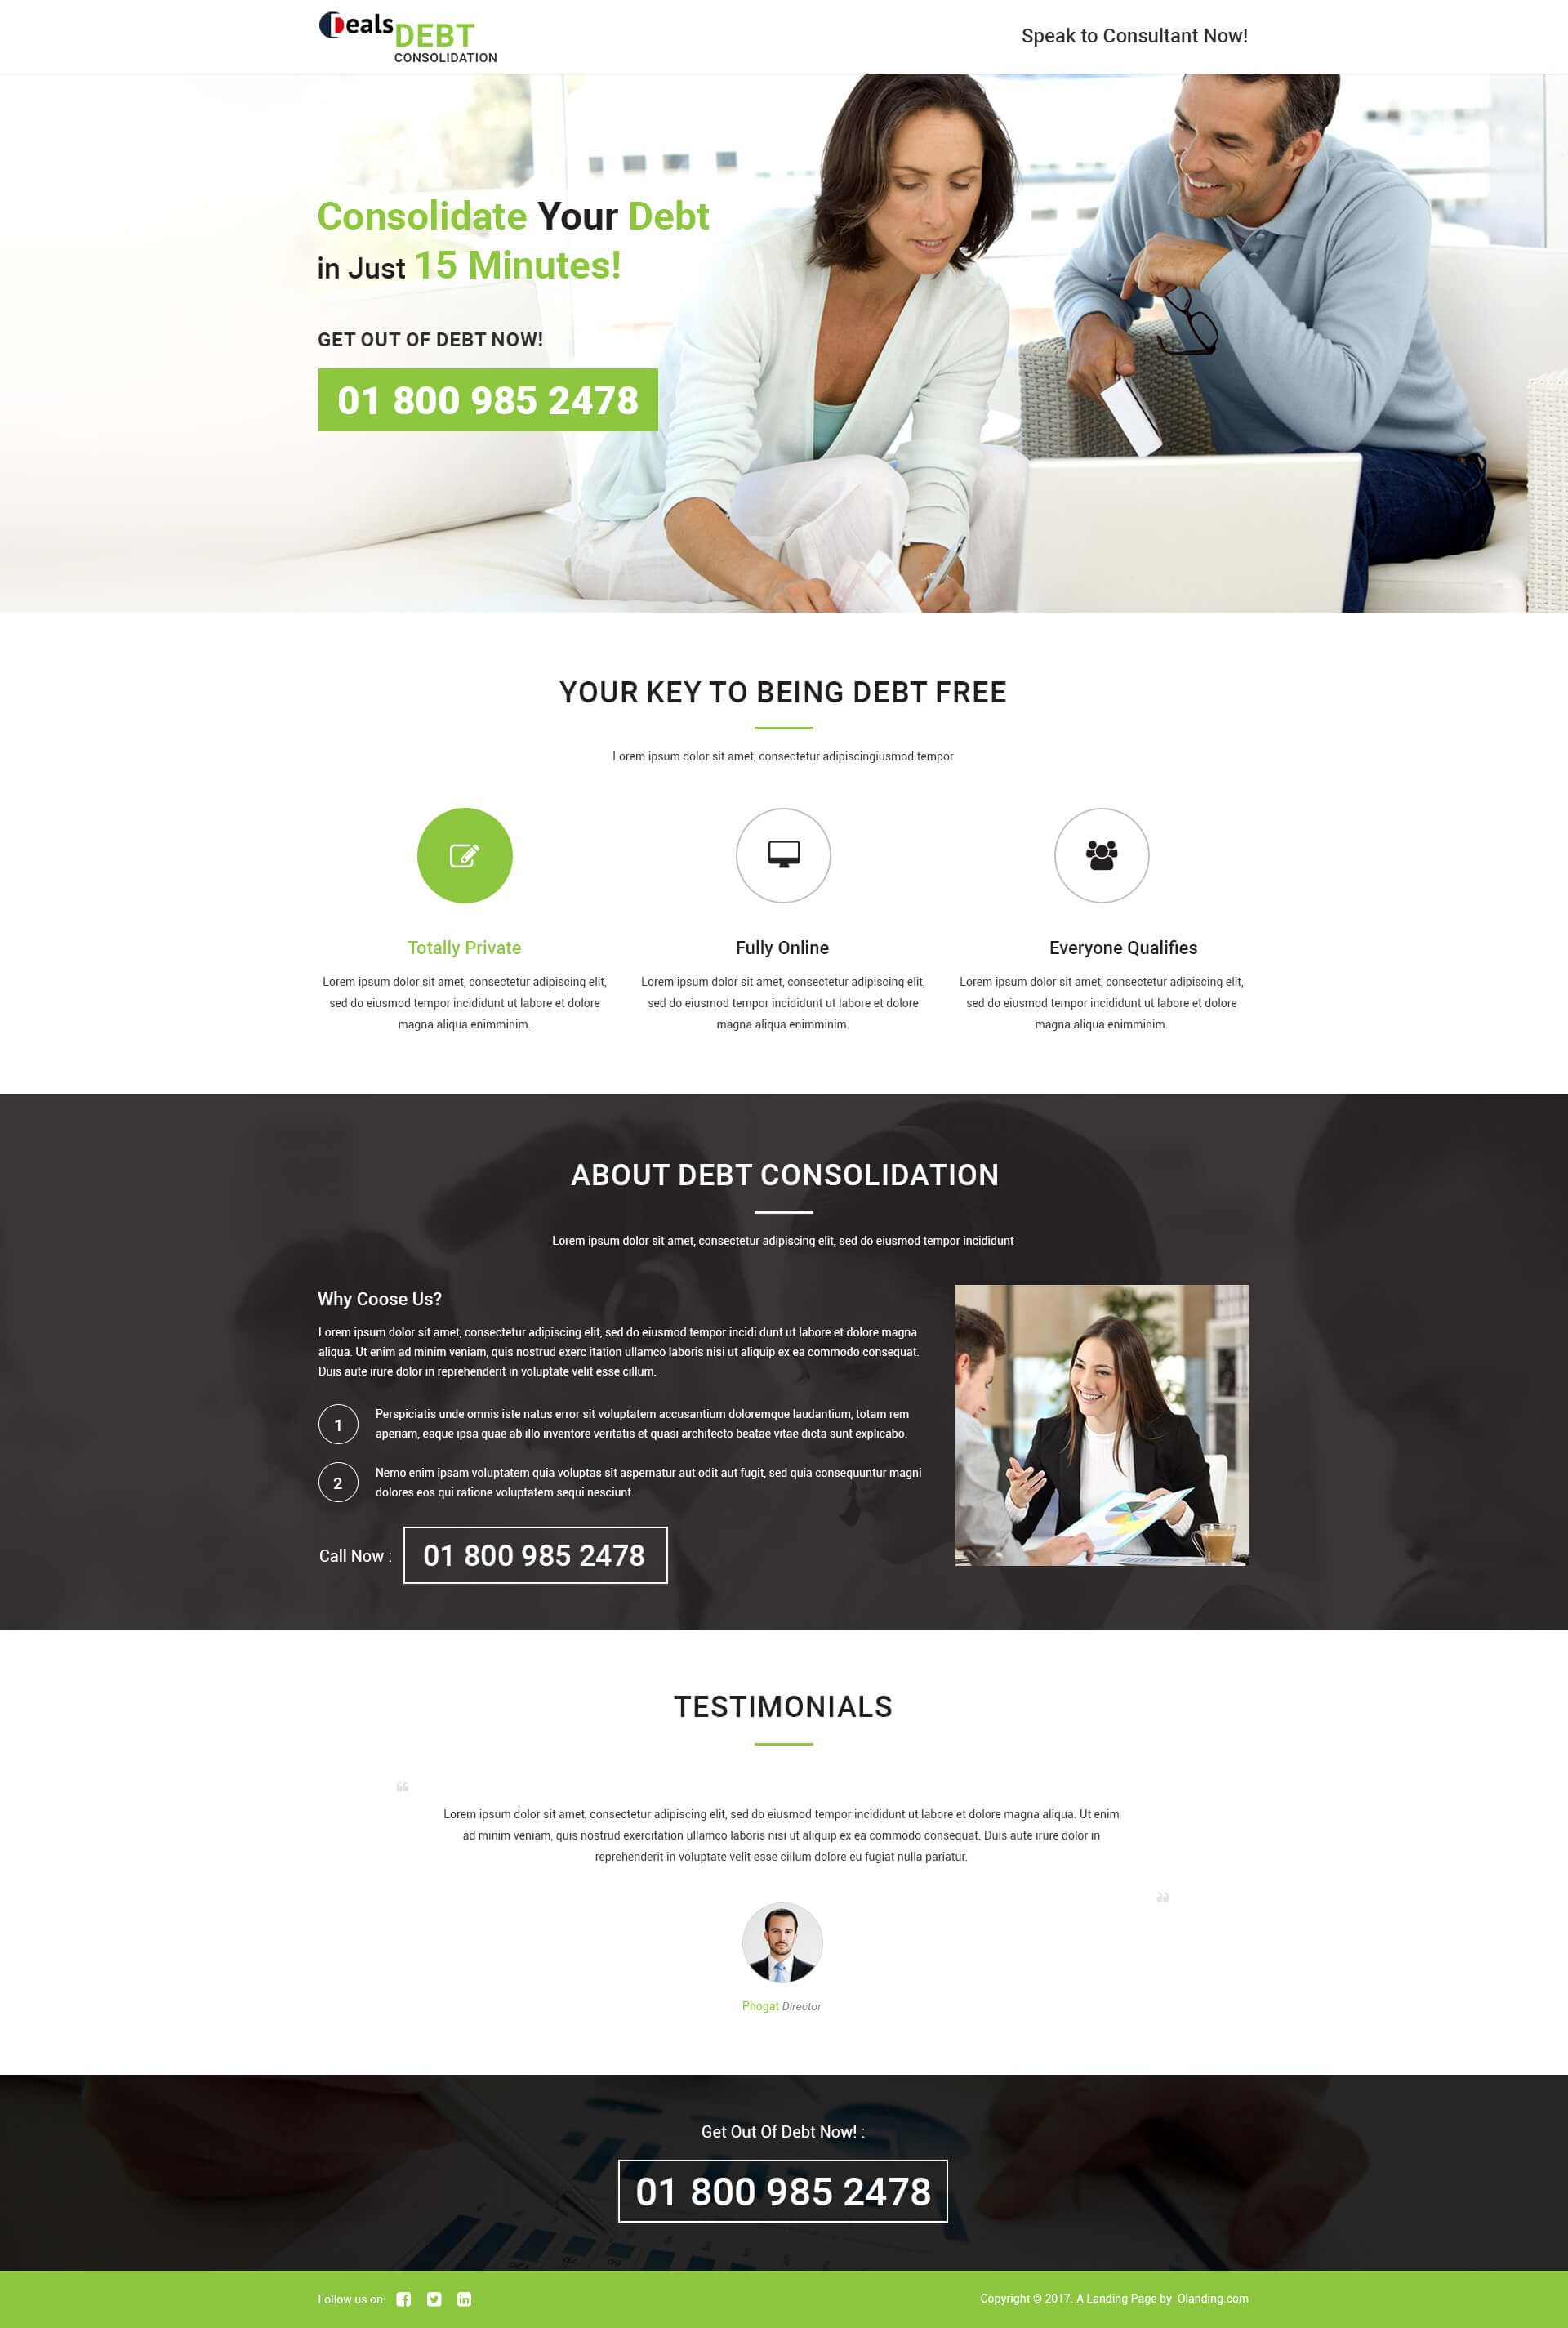 Debt Consolidation PPC Landing Page Design Template For Credit Card ...